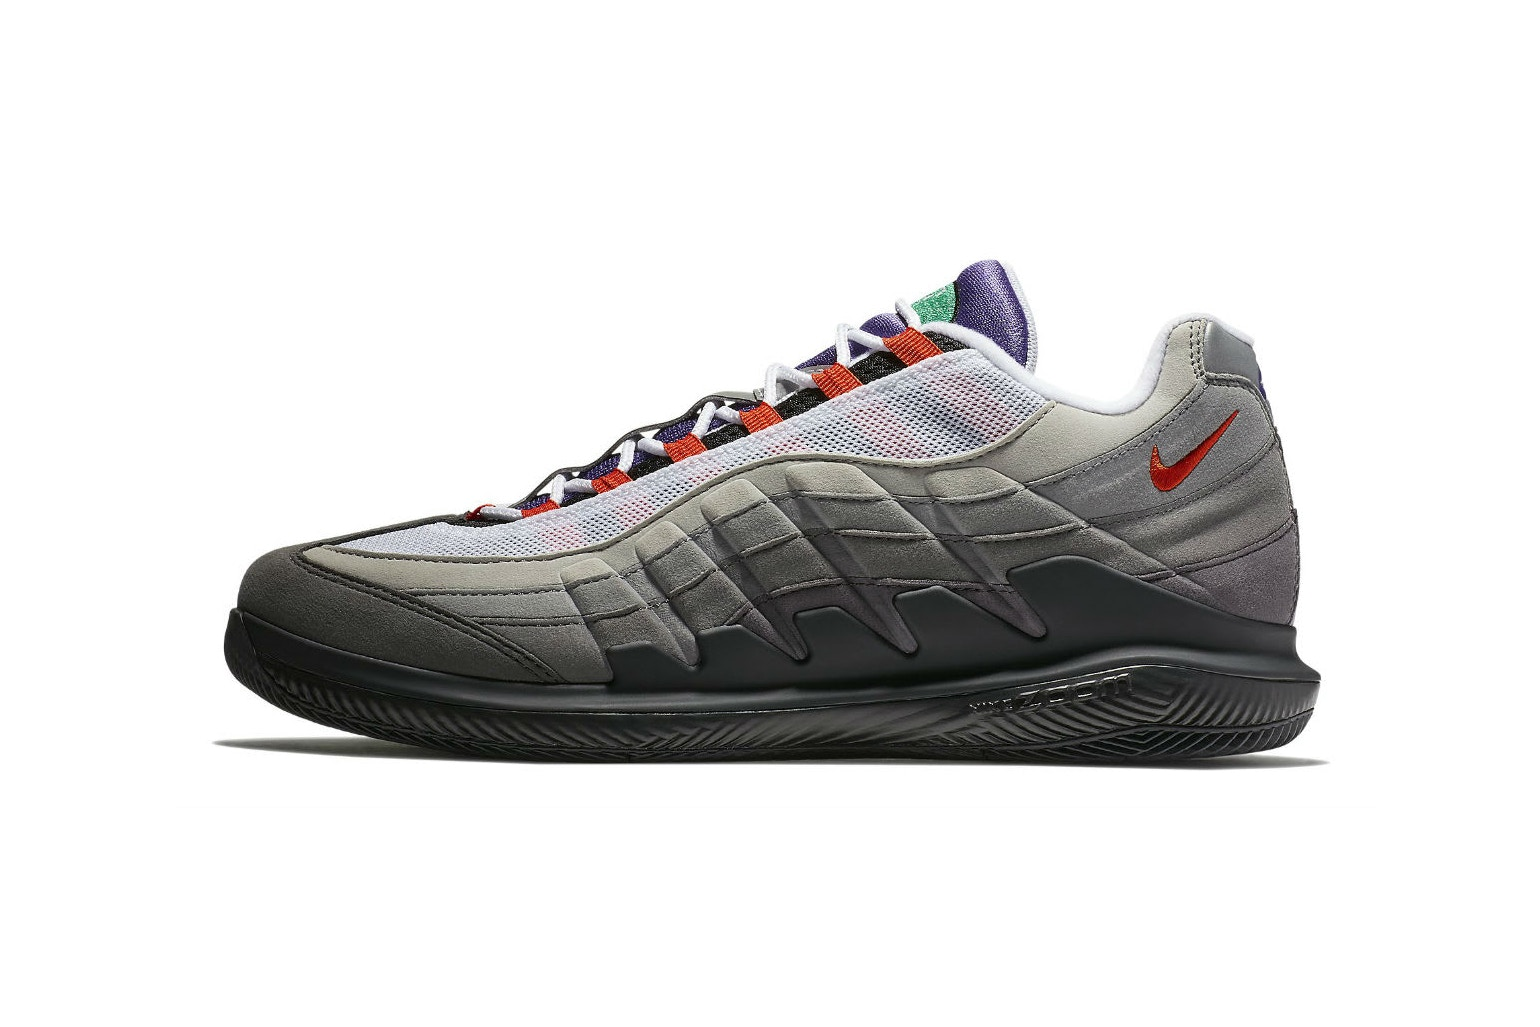 nikecourt-vapor-rf-air-max-95-greedy-1